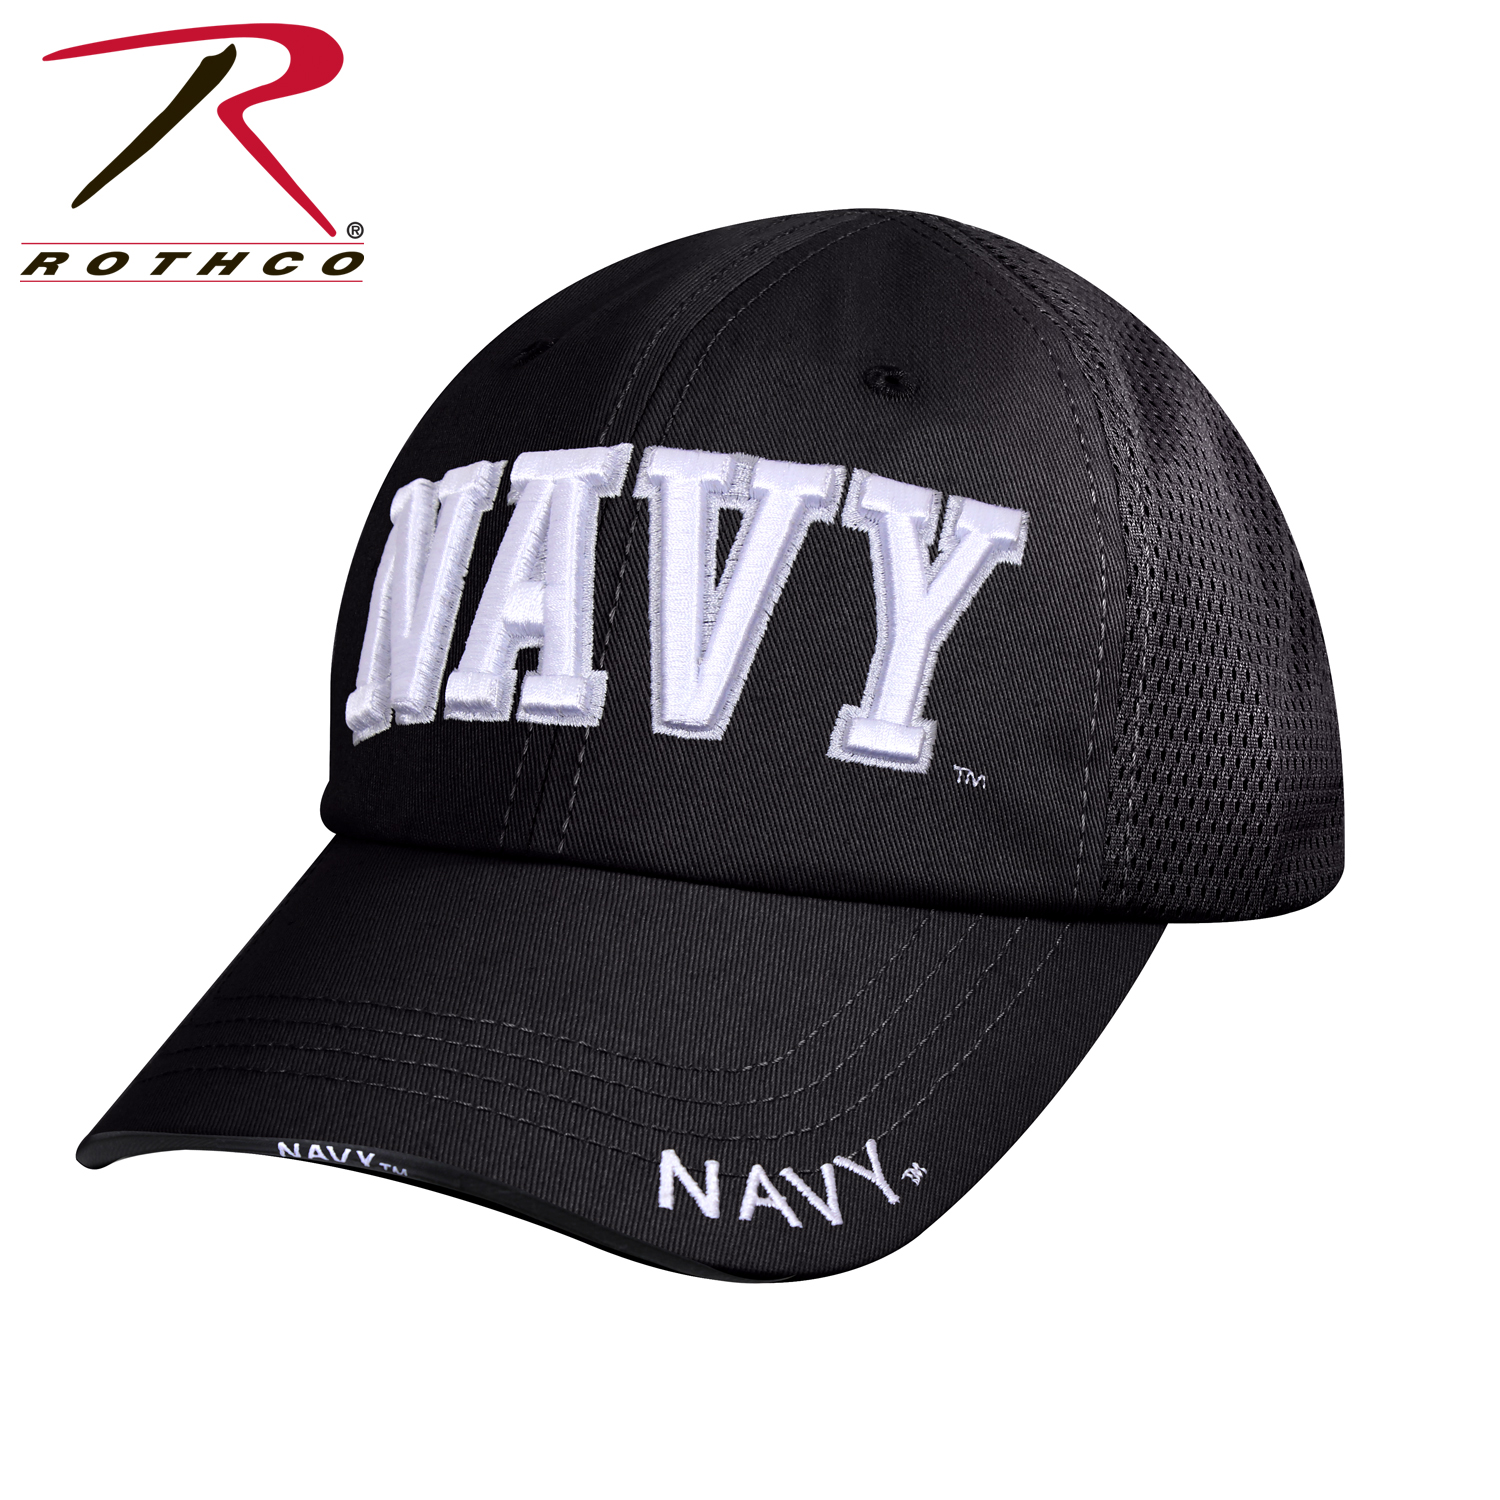 Rothco Tactical Operator Cap With US Flag 8dd6b816b888